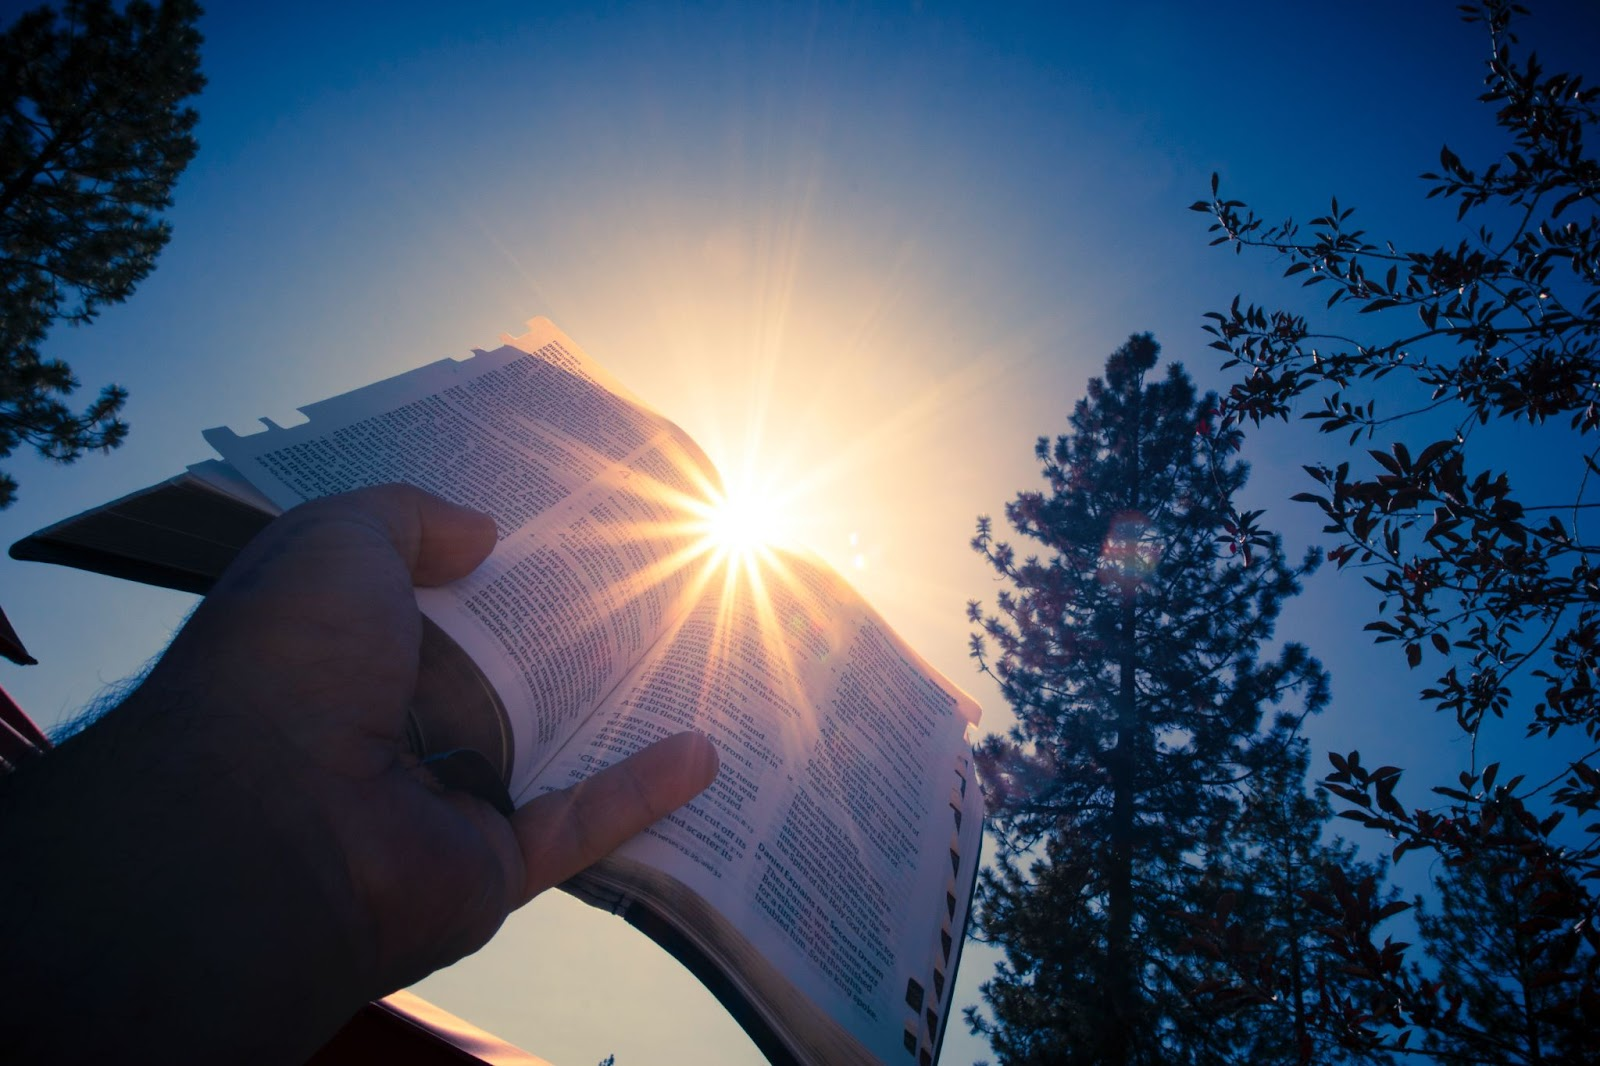 person holding Bible up to the sun